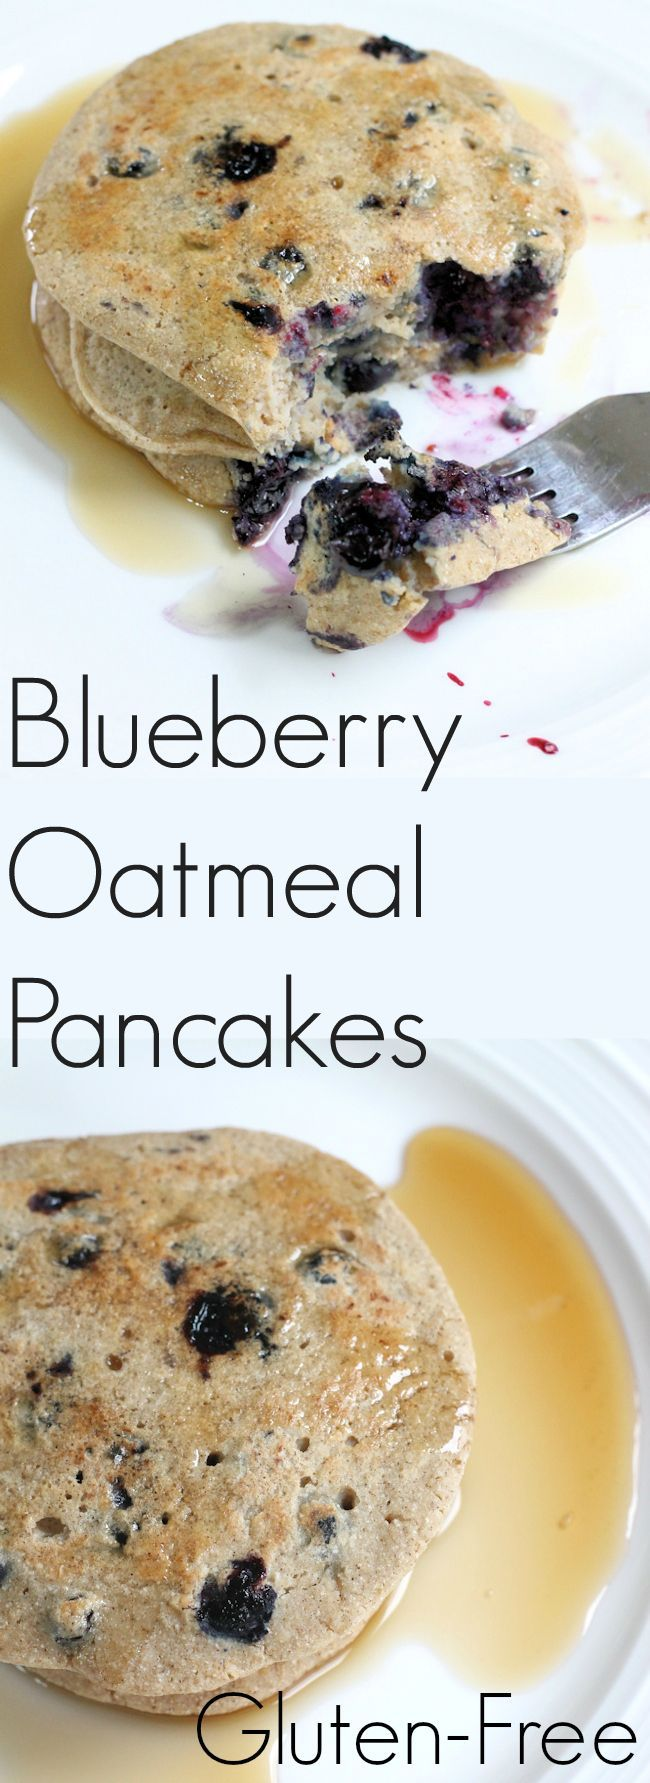 Blueberry Oatmeal Pancakes - gluten free, low in calories and packed with heart healthy soluble fiber from oats and antioxidants from blueberries.